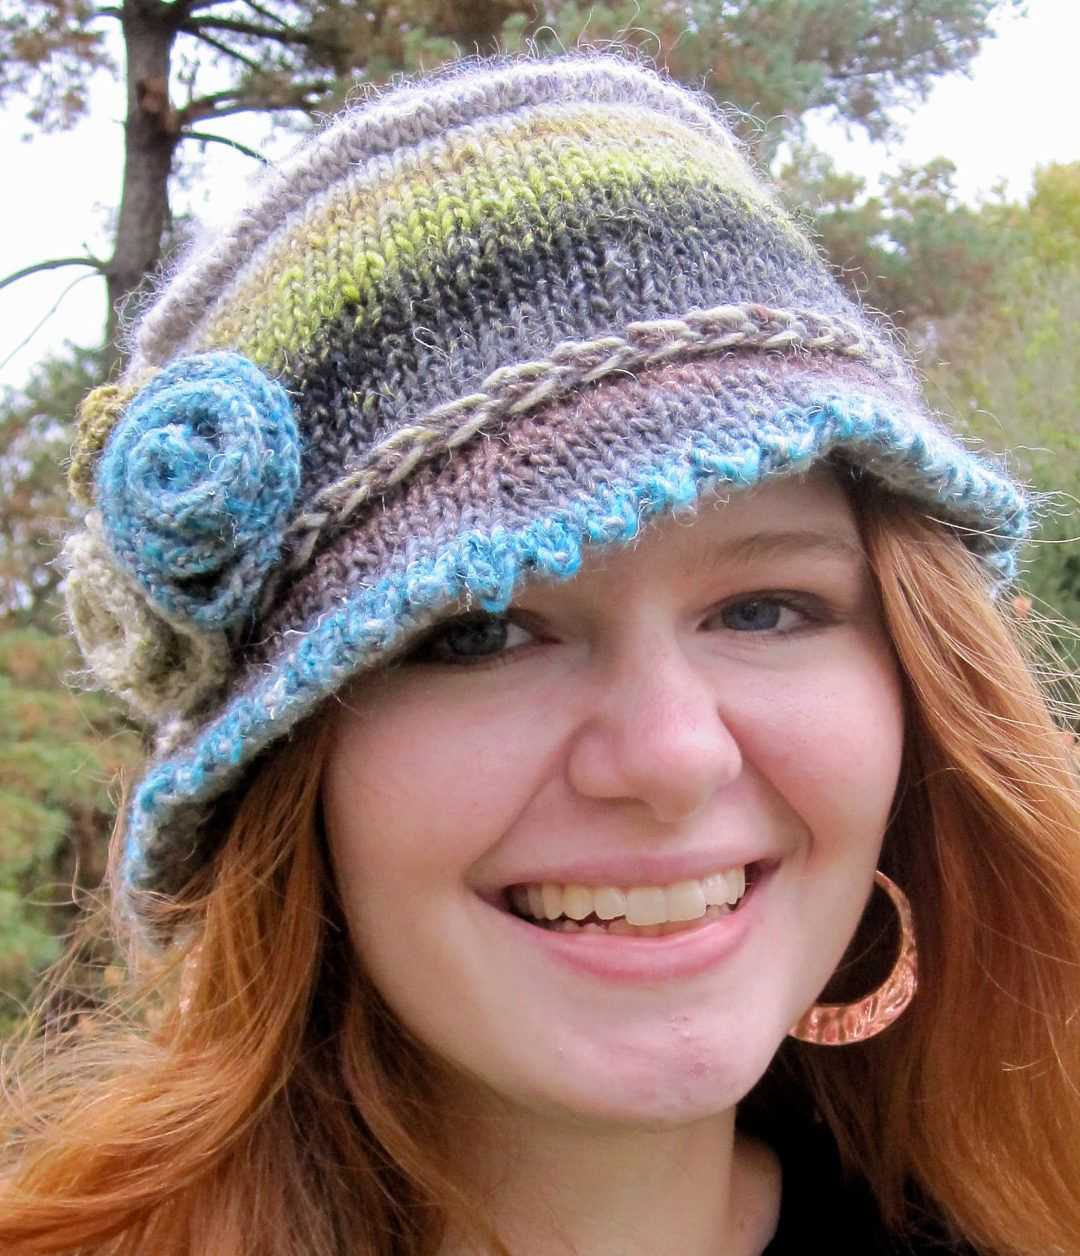 Hats With Bills And Brims Knitting Patterns Knitting Patterns Free Hats Hat Knitting Patterns Knitted Hats